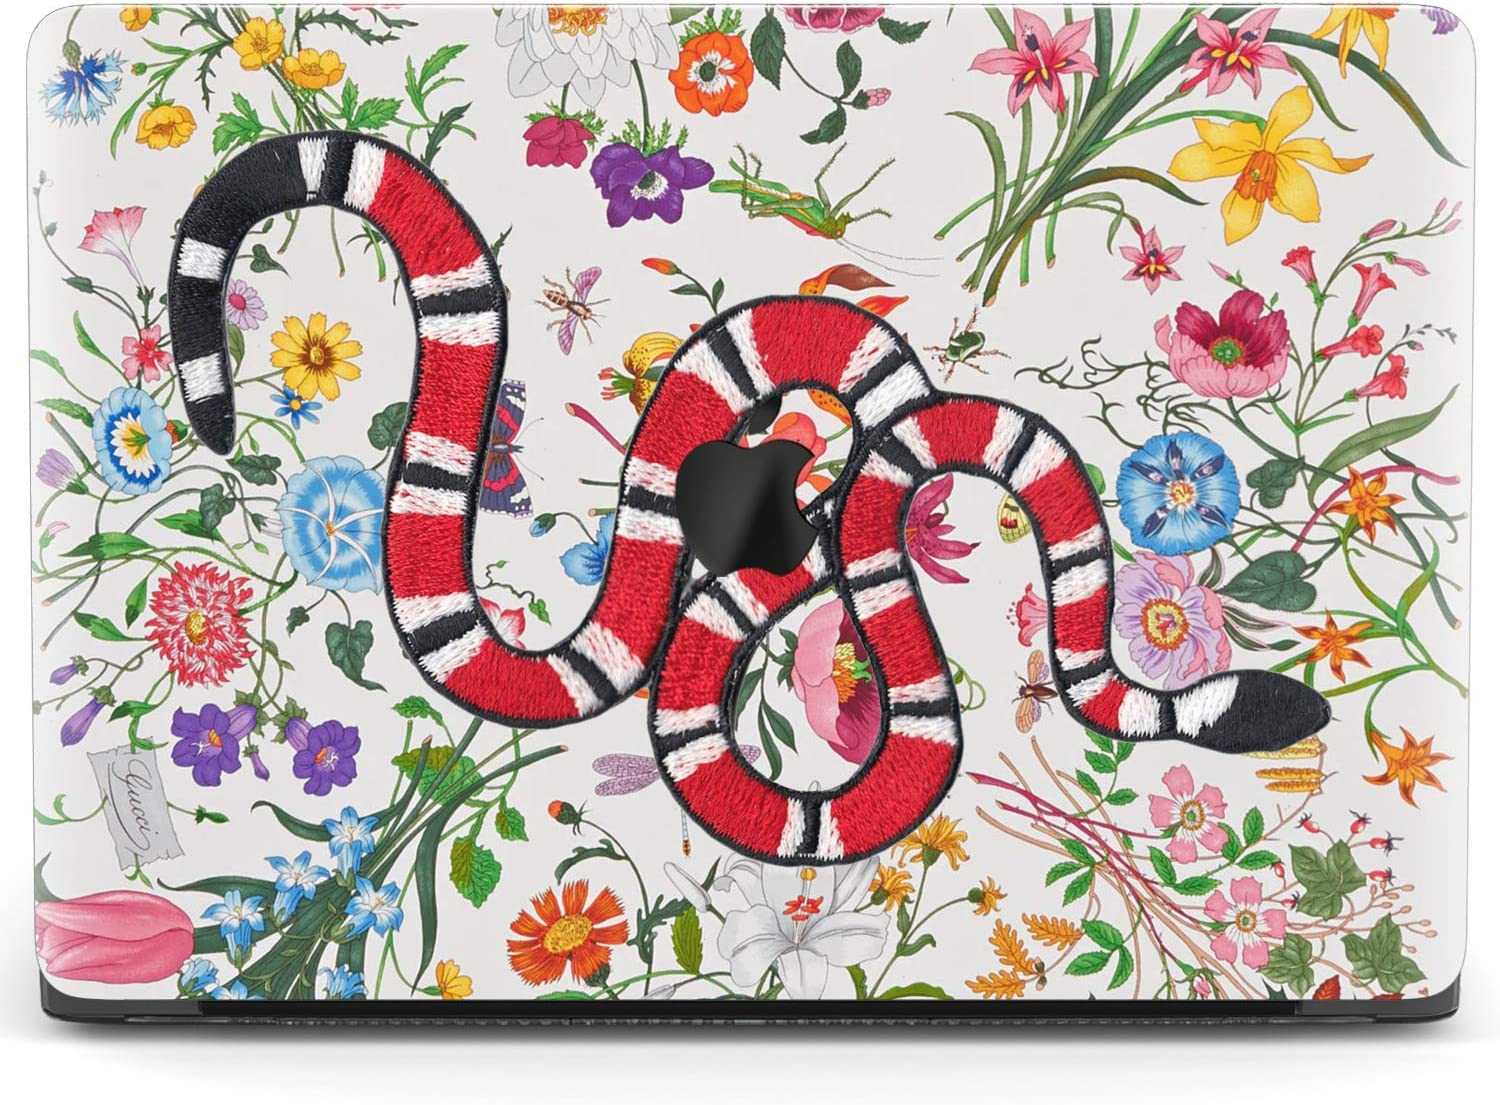 Mertak Hard Case Compatible with MacBook Pro 16 Air 13 inch Mac 15 Retina 12 11 2020 2019 2018 2017 Snake Flowers Embroidered Protective Insect Touch Bar Clear Plastic Print Cover Botanical Serpent